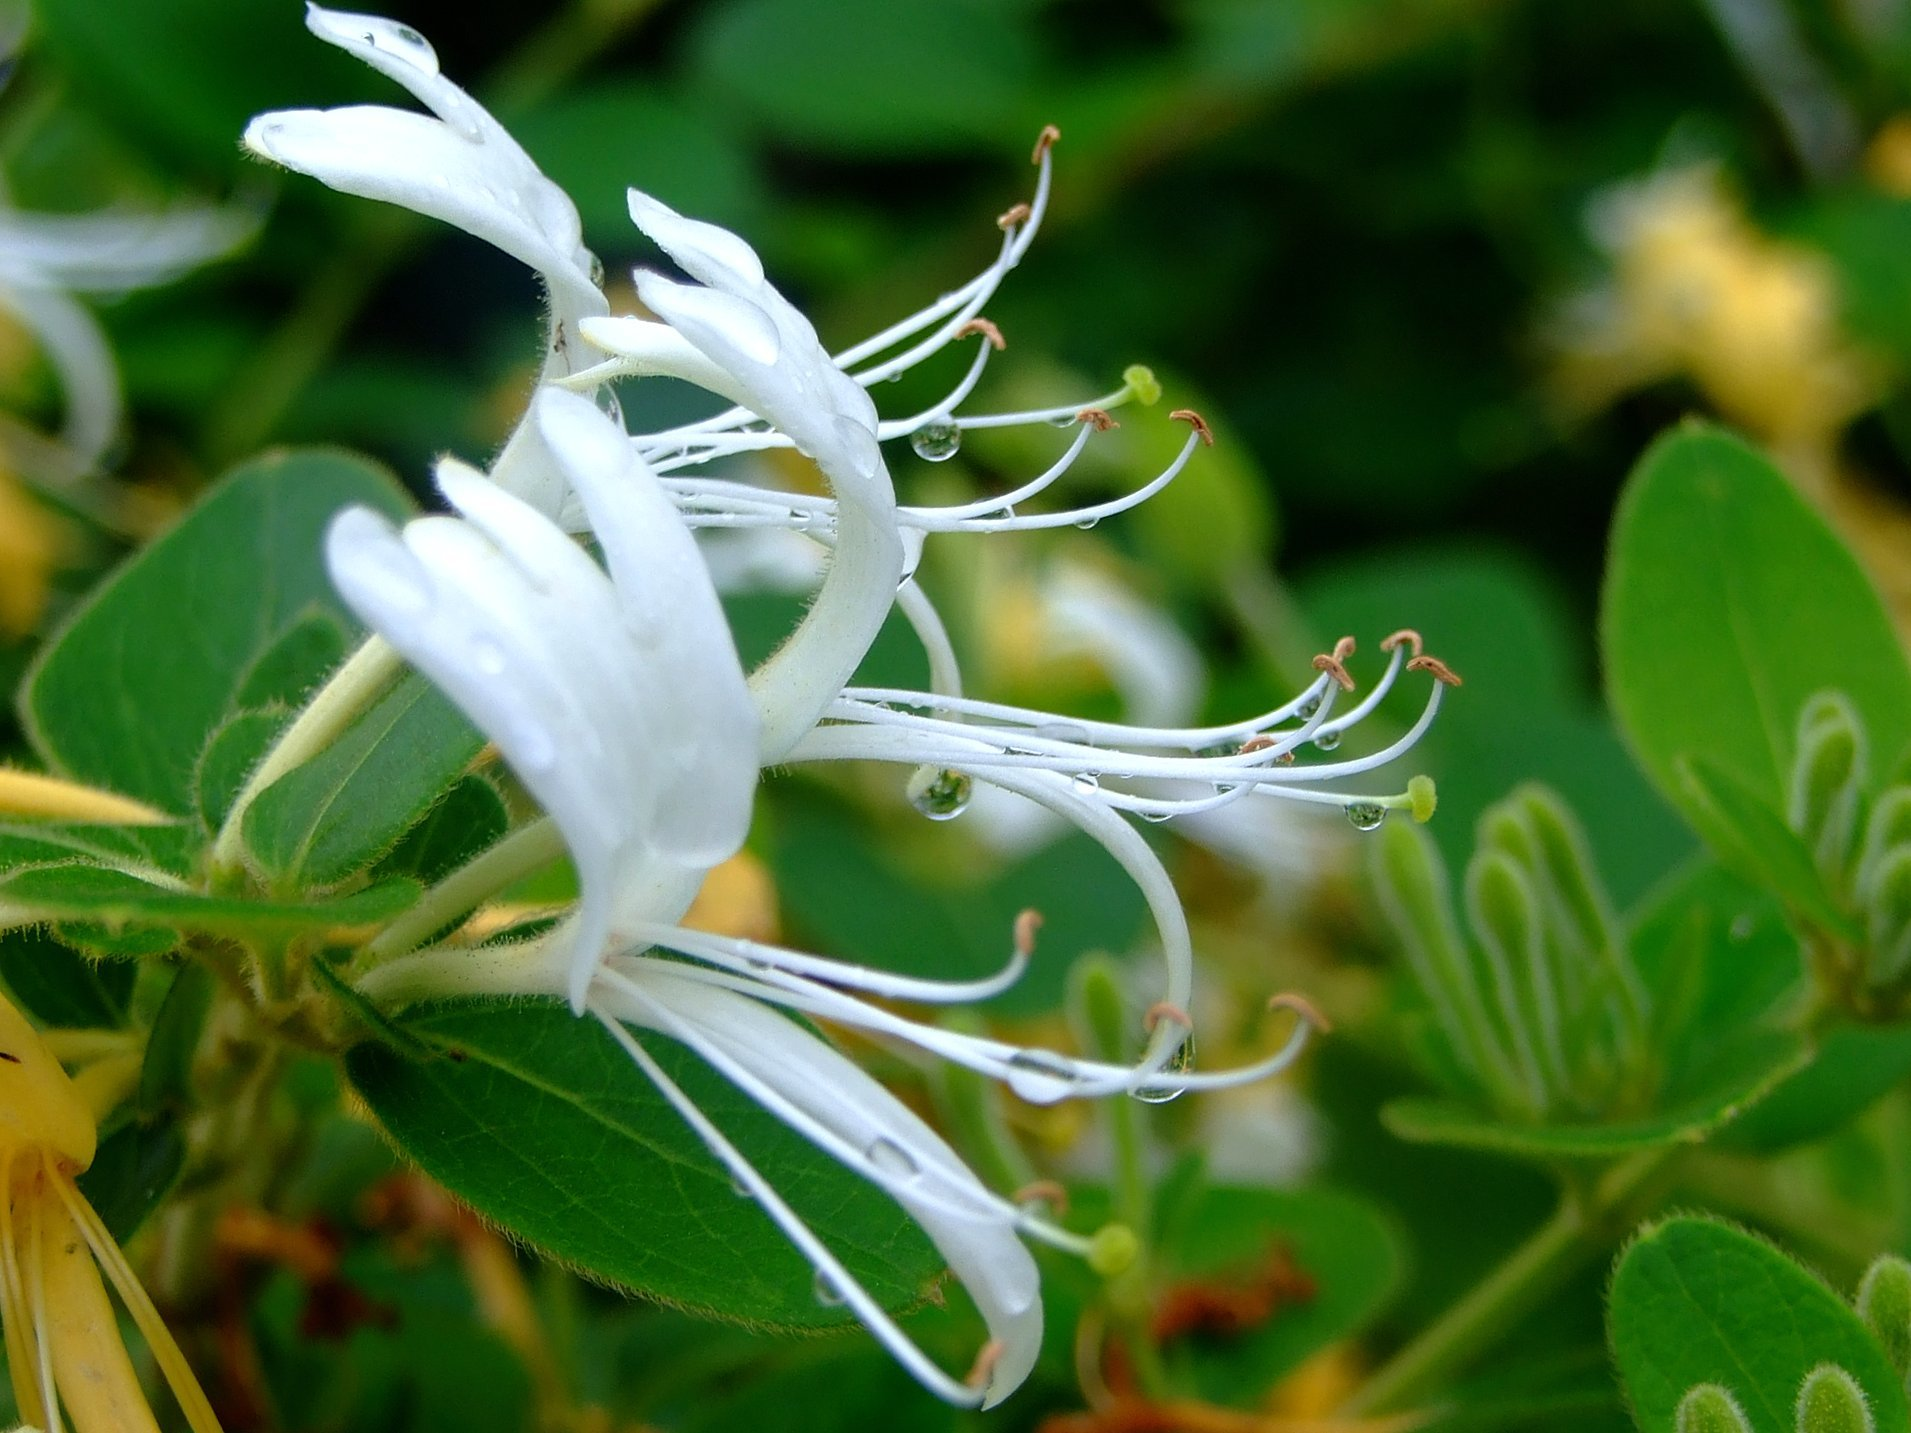 Image of Japanese honeysuckle